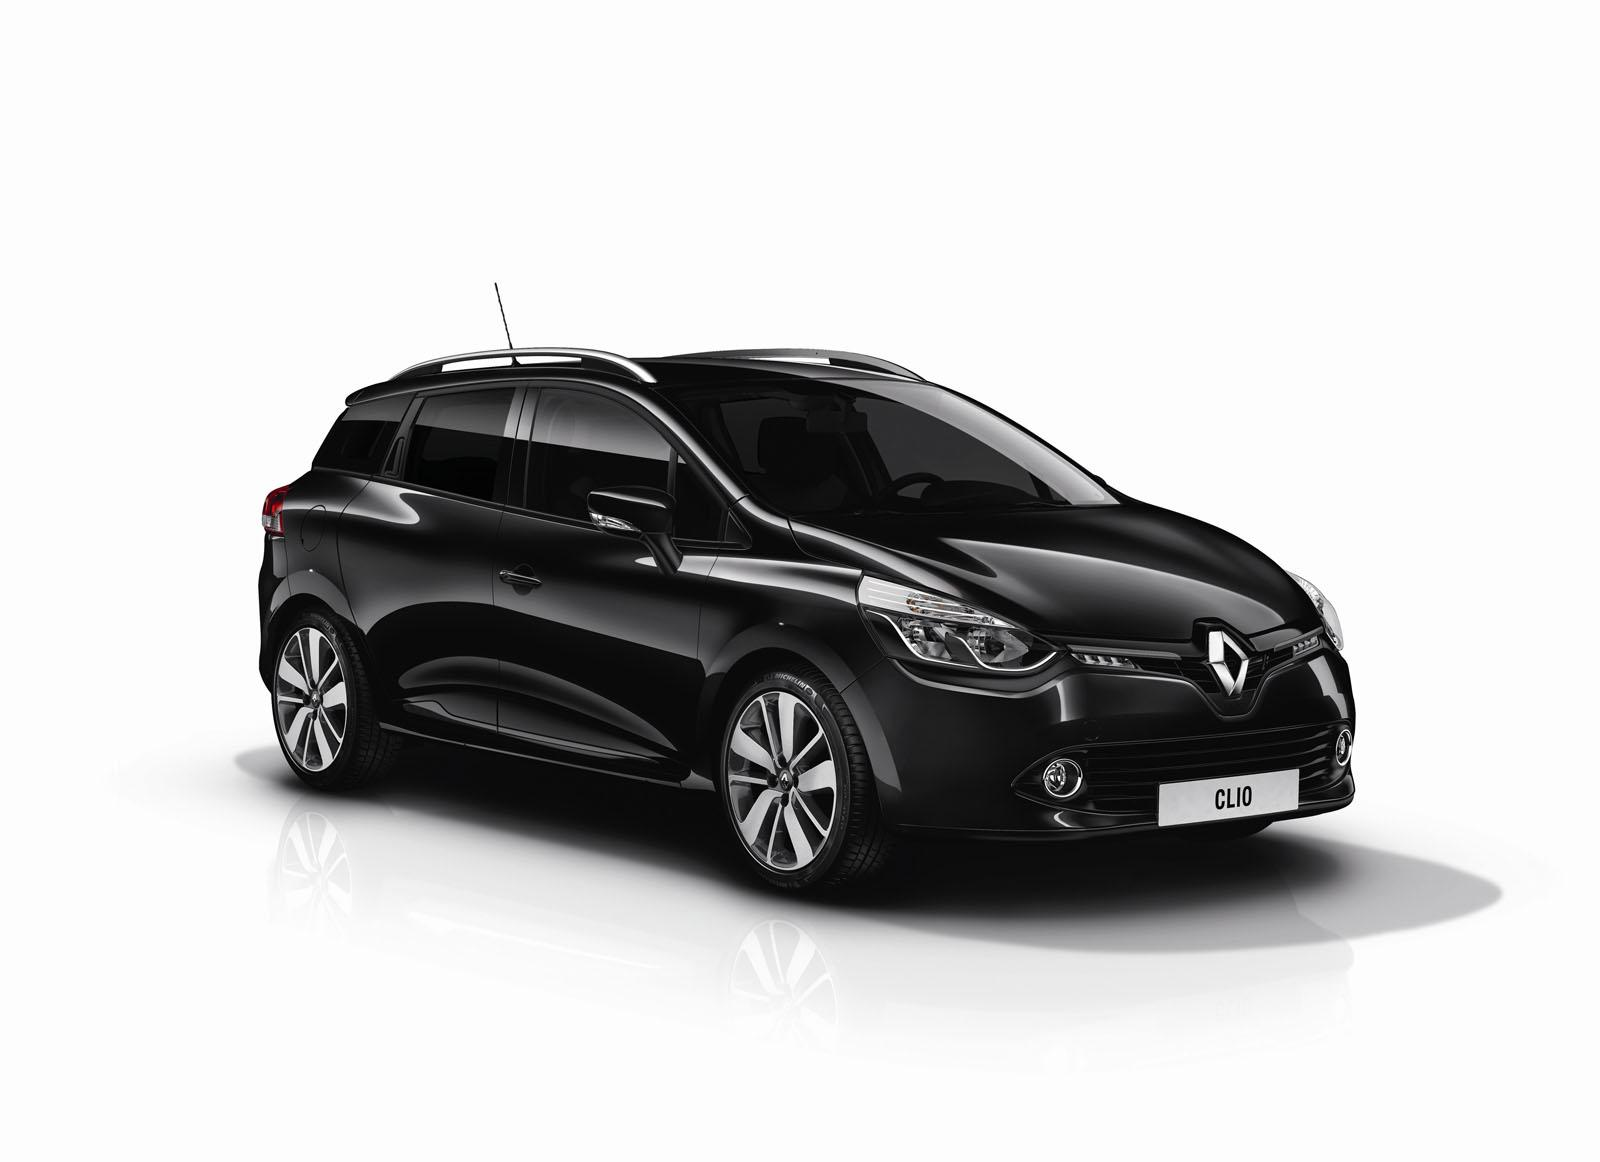 renault introduces clio 39 graphite 39 limited edition in europe. Black Bedroom Furniture Sets. Home Design Ideas